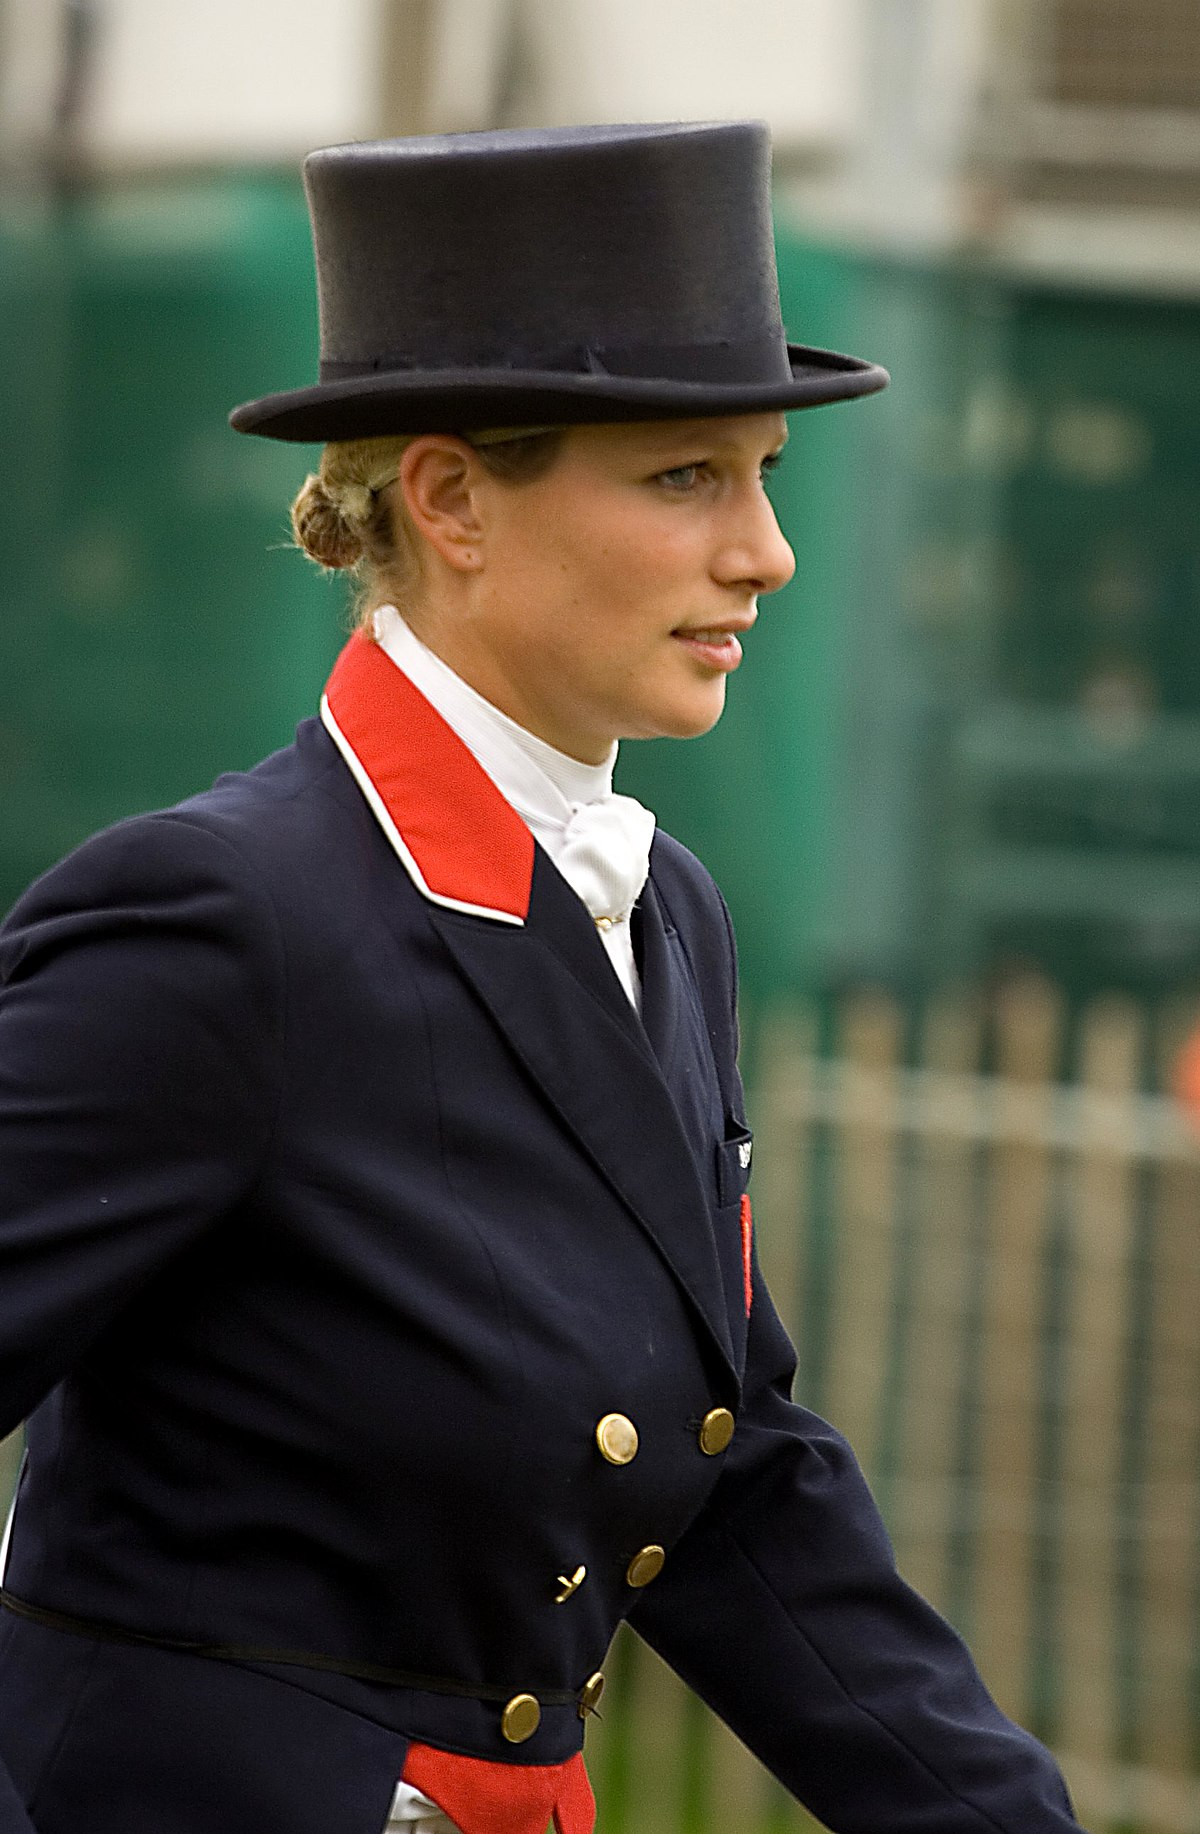 zara phillips wikipedia la enciclopedia libre. Black Bedroom Furniture Sets. Home Design Ideas